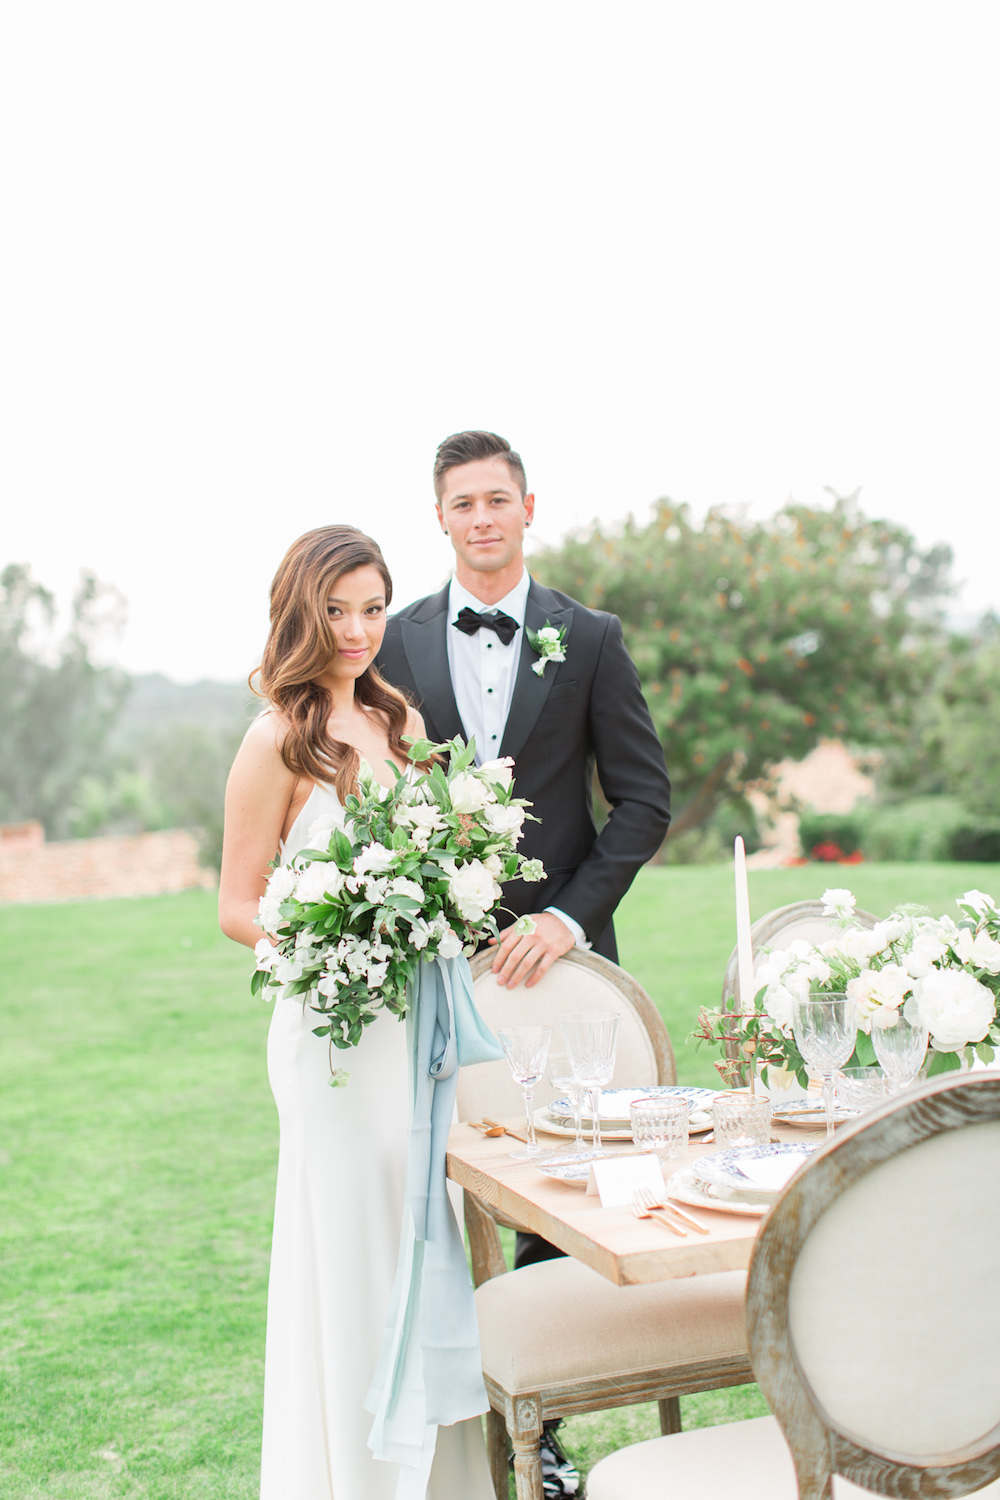 Bride & groom portrait | Rancho Valencia Weddings | Rancho Santa Fe | Compass Floral | Wedding Florist in San Diego and Southern California | Cavin Elizabeth Photography